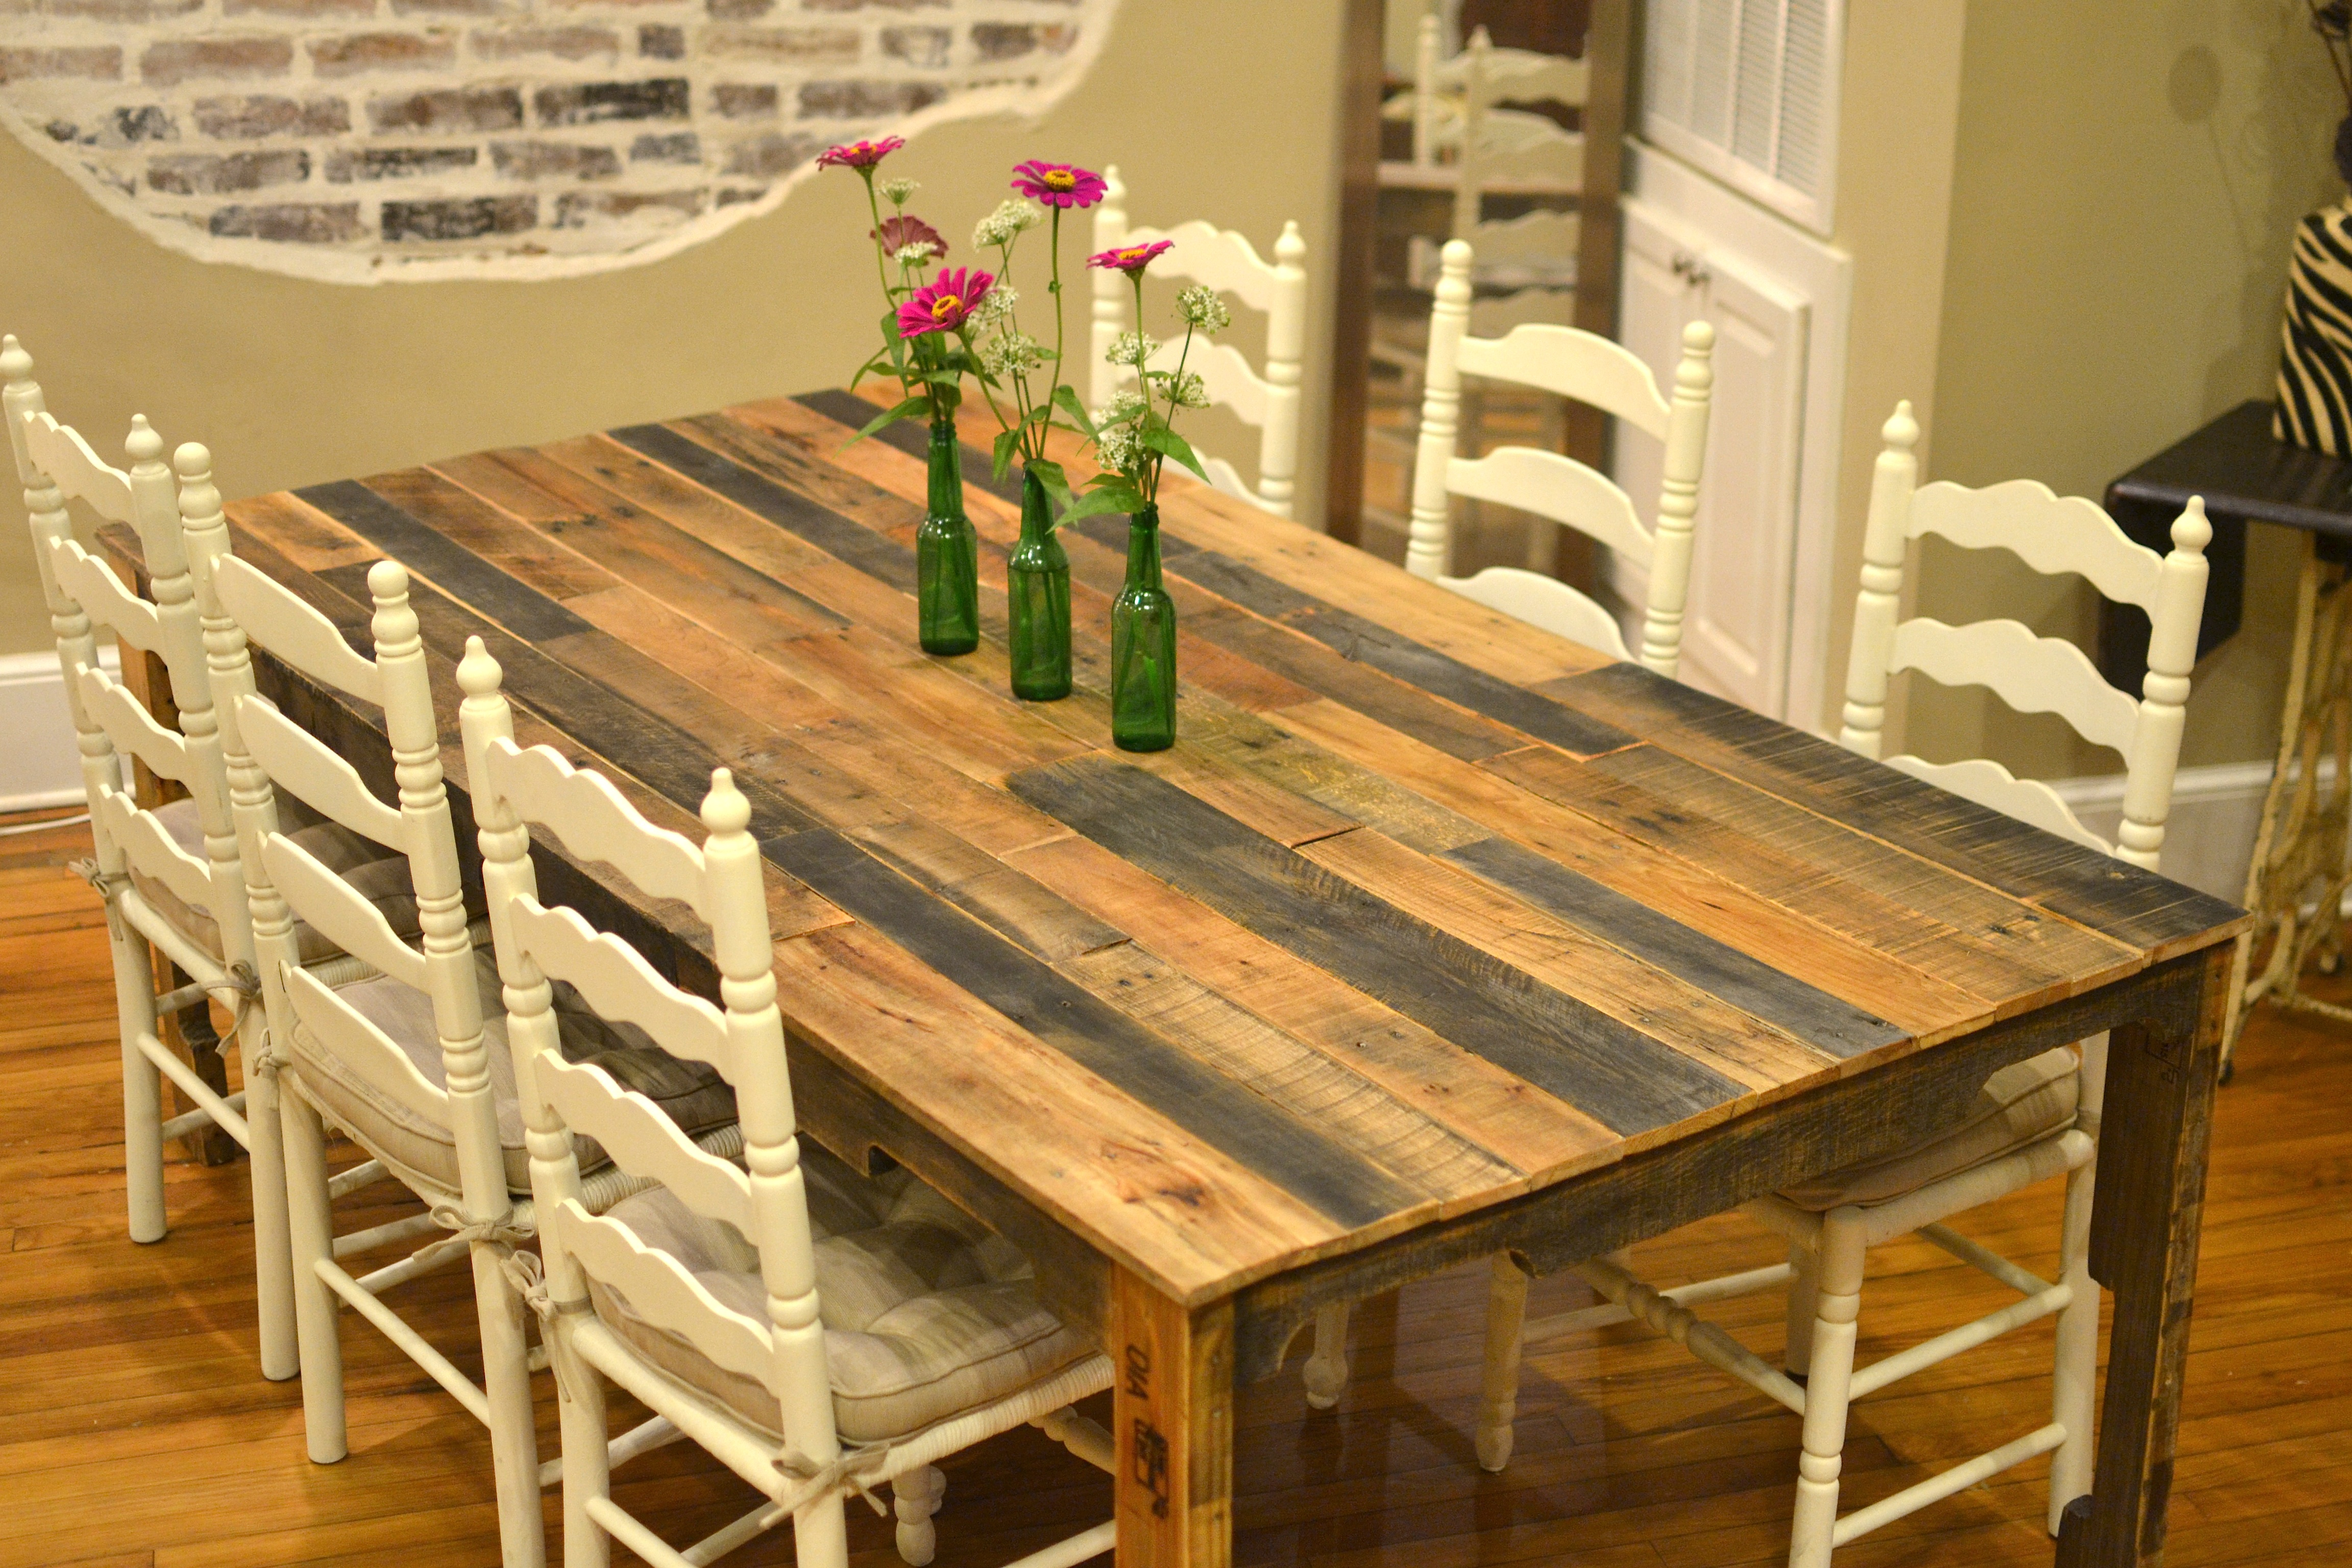 the shipping pallet dining table diy kitchen table plans Harvest style dining table made from shipping pallets